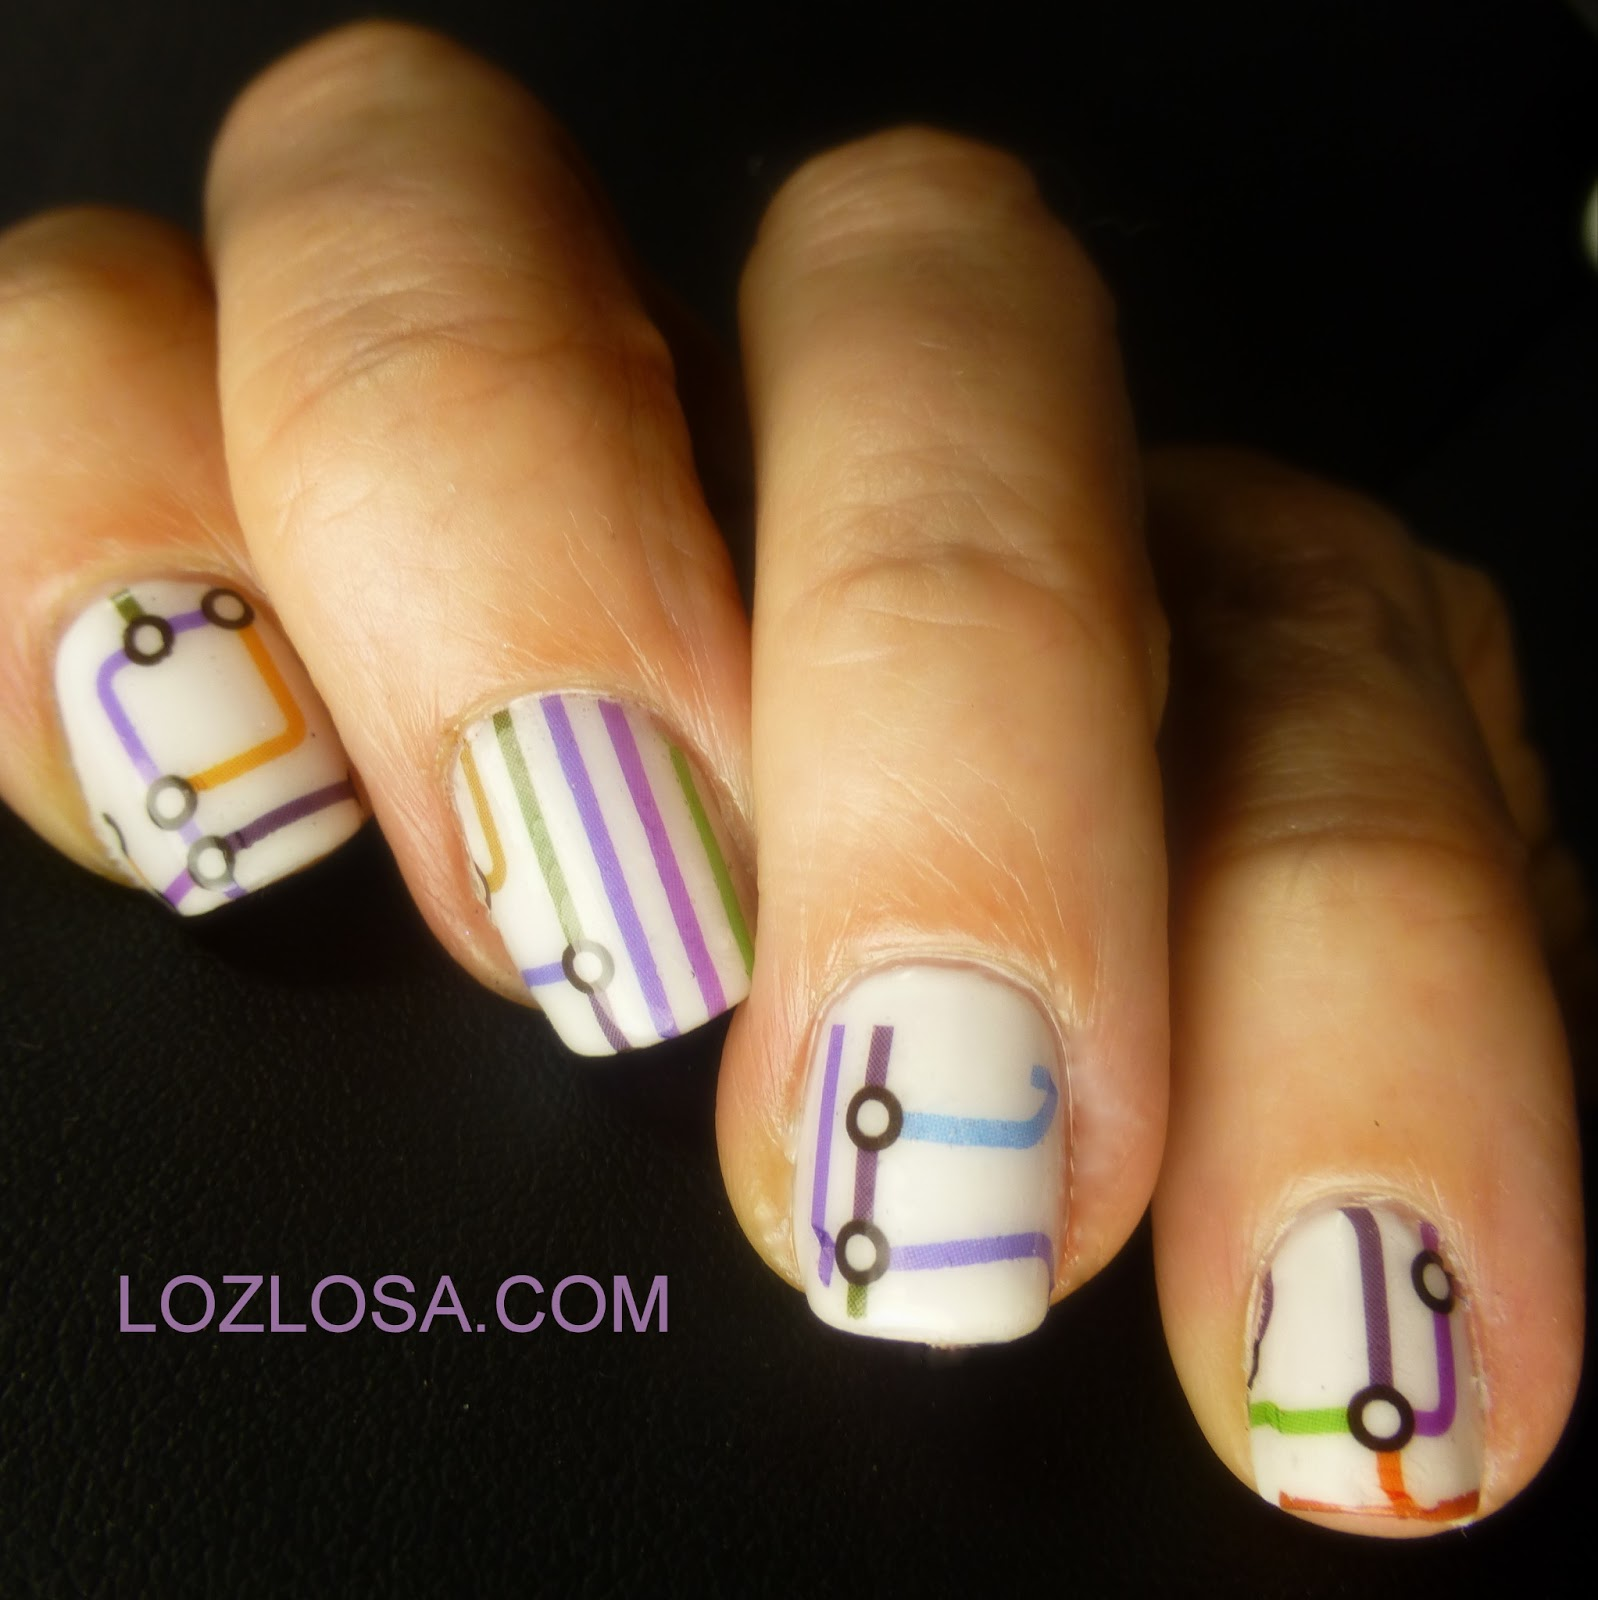 Mapping It Out with Fing\'rs Nail Art Tattoos - A Review - L O Z L O S A